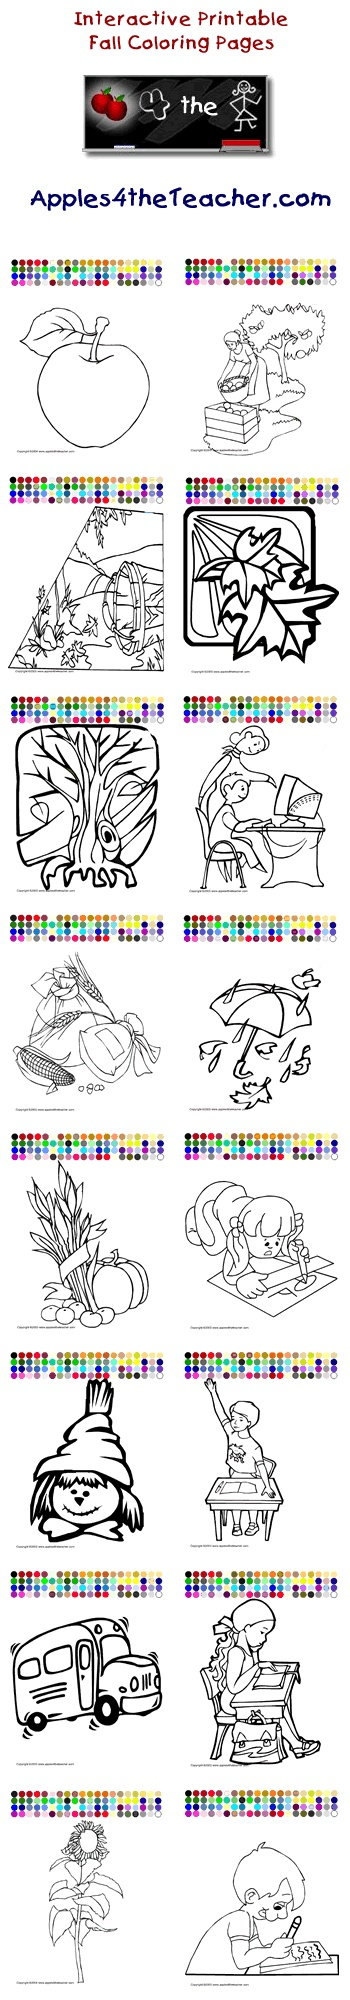 Printable Interactive Fall Coloring Pages For Kids